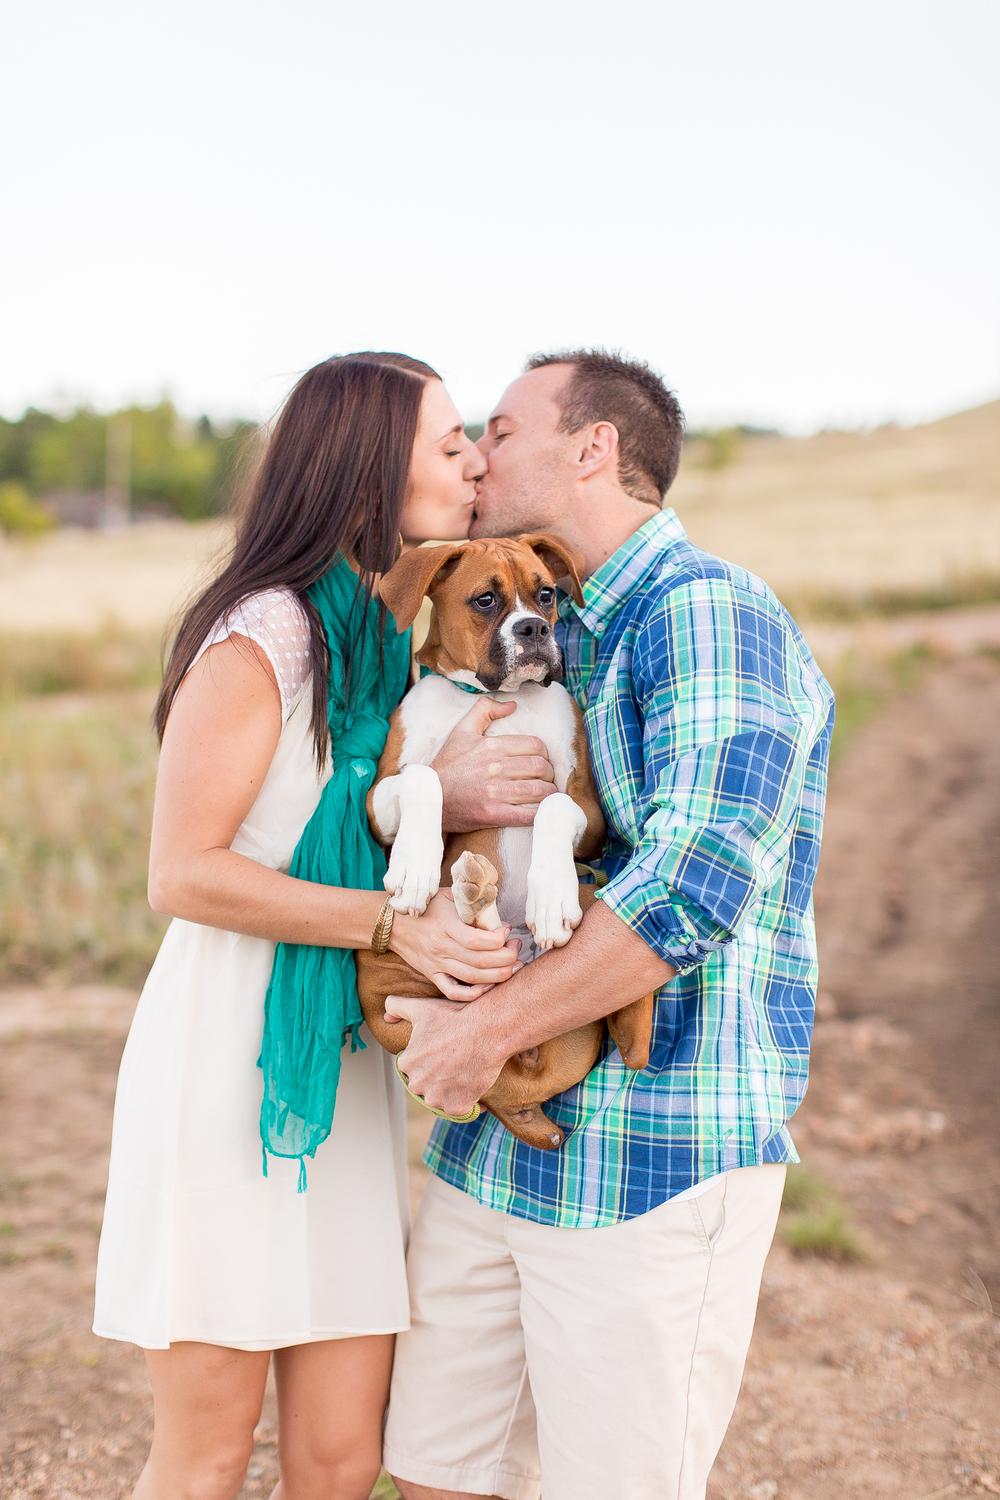 Colorado Engagement Photography by TréCreative (77 of 111).jpg